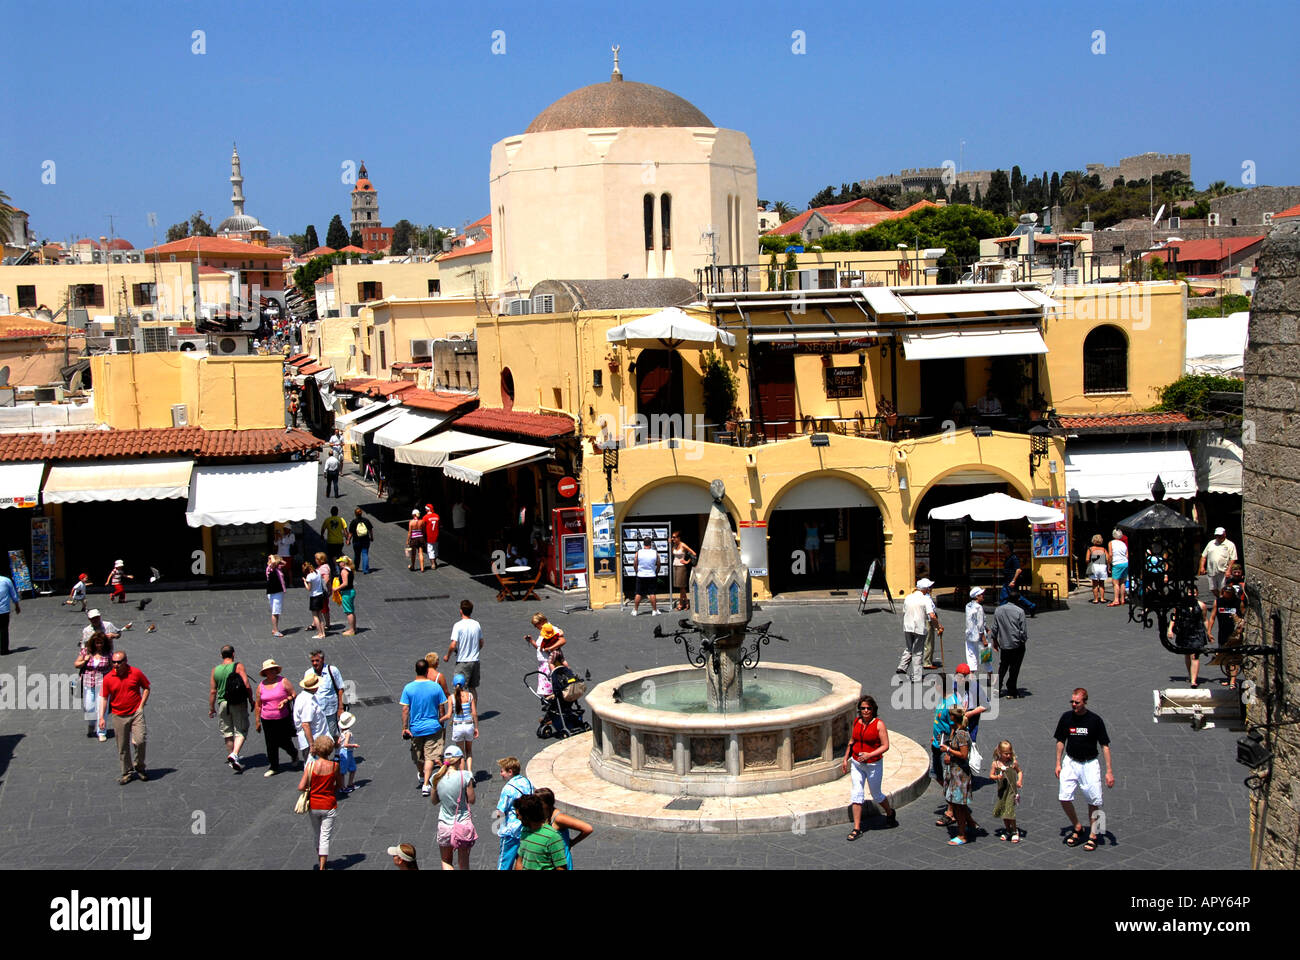 Square, old town, Rhodos, Greece - Stock Image